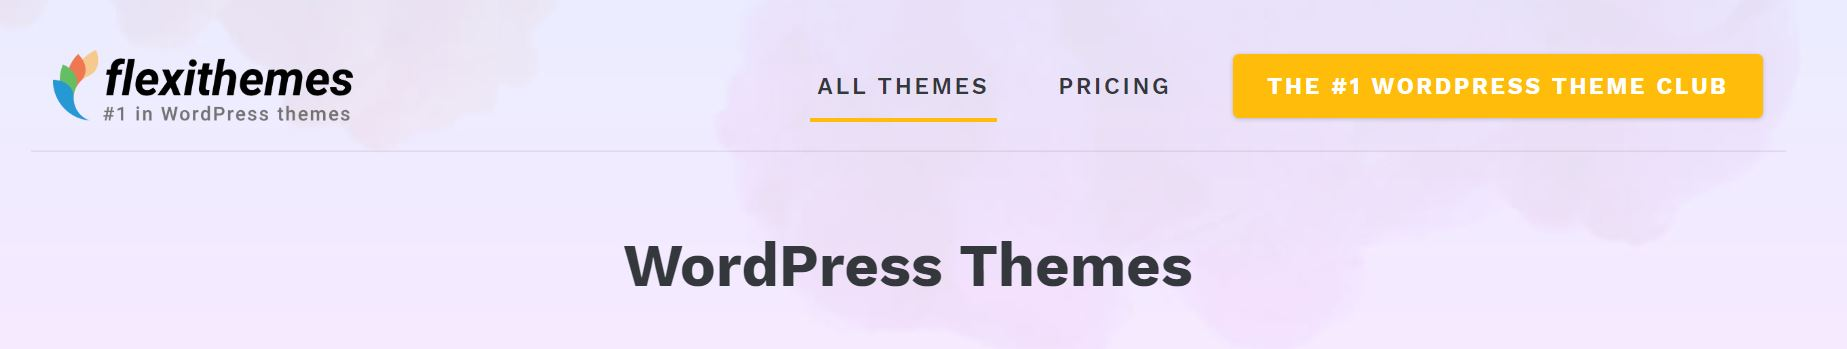 Free WordPress Themes are used by both novice and expert web developers to create clean and easy to create sites.